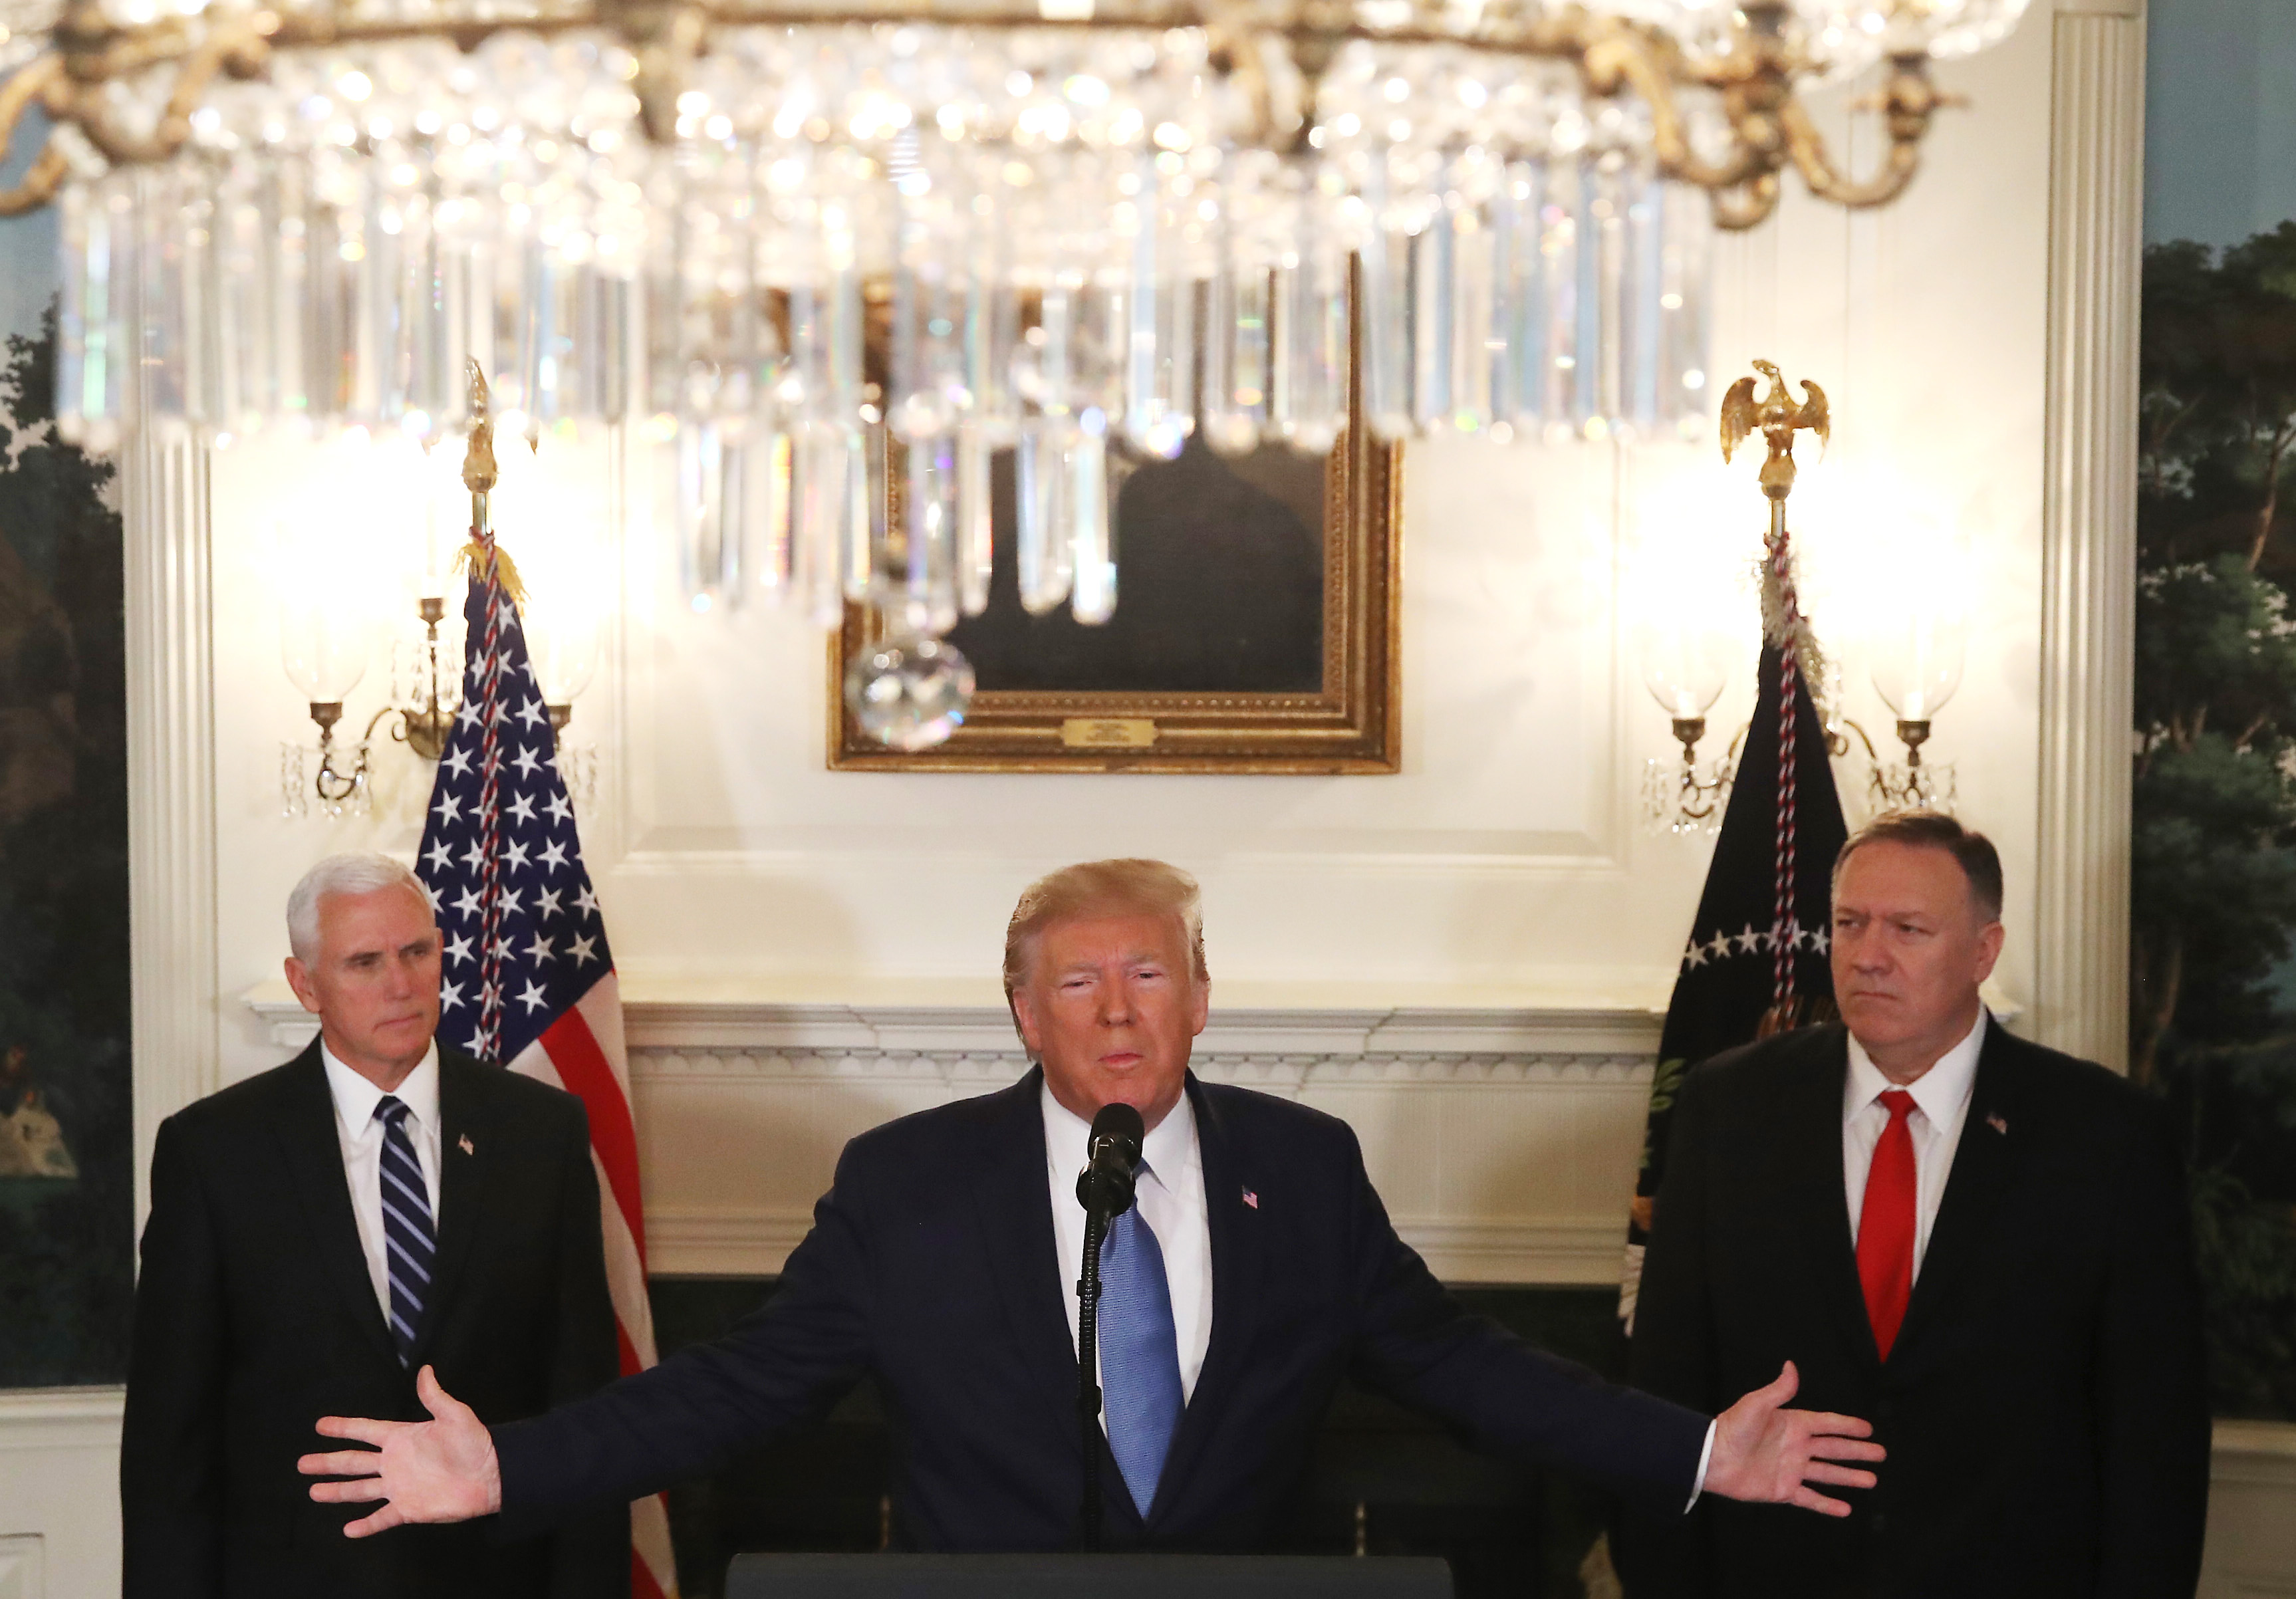 WASHINGTON, DC - OCTOBER 23: U.S. President Donald Trump is flanked by Vice President Mike Pence (L), and Secretary of State Mike Pompeo (R), while making a statement in the Diplomatic Room at the White House, on October 23, 2019 in Washington, DC. President Trump announced that the U.S. would be lifting all sanctions imposed on Turkey in response to their invasion of northern Syria. (Photo by Mark Wilson/Getty Images)